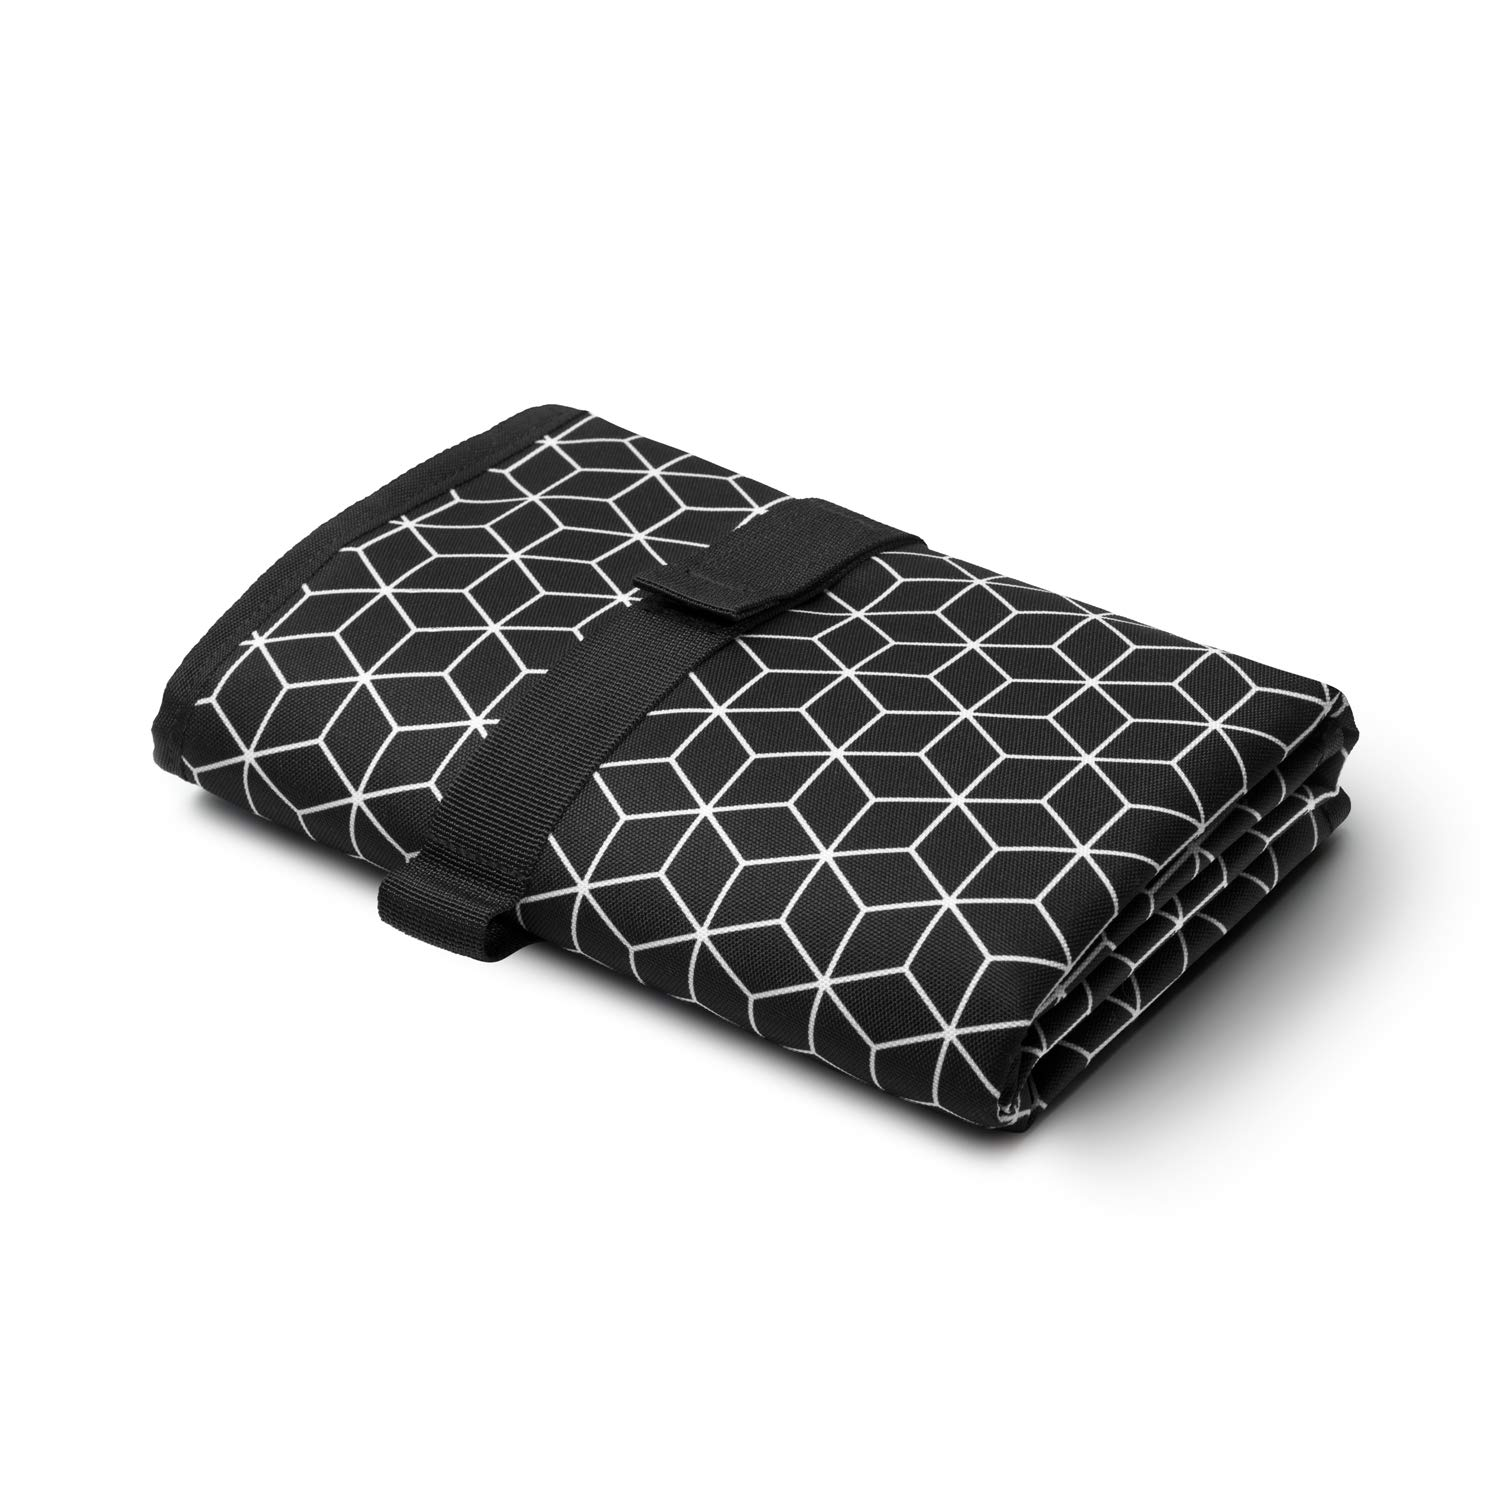 Toolik Baby Diaper Changing Pad, Extra Large (27.5 x 19.7 inch) Waterproof Mat for Stroller Walks or Diaper Bag, Fits Newborn and Toddler for Quick Change on The go, Black with 3D Cube by Toolik-Parenting Made Easy